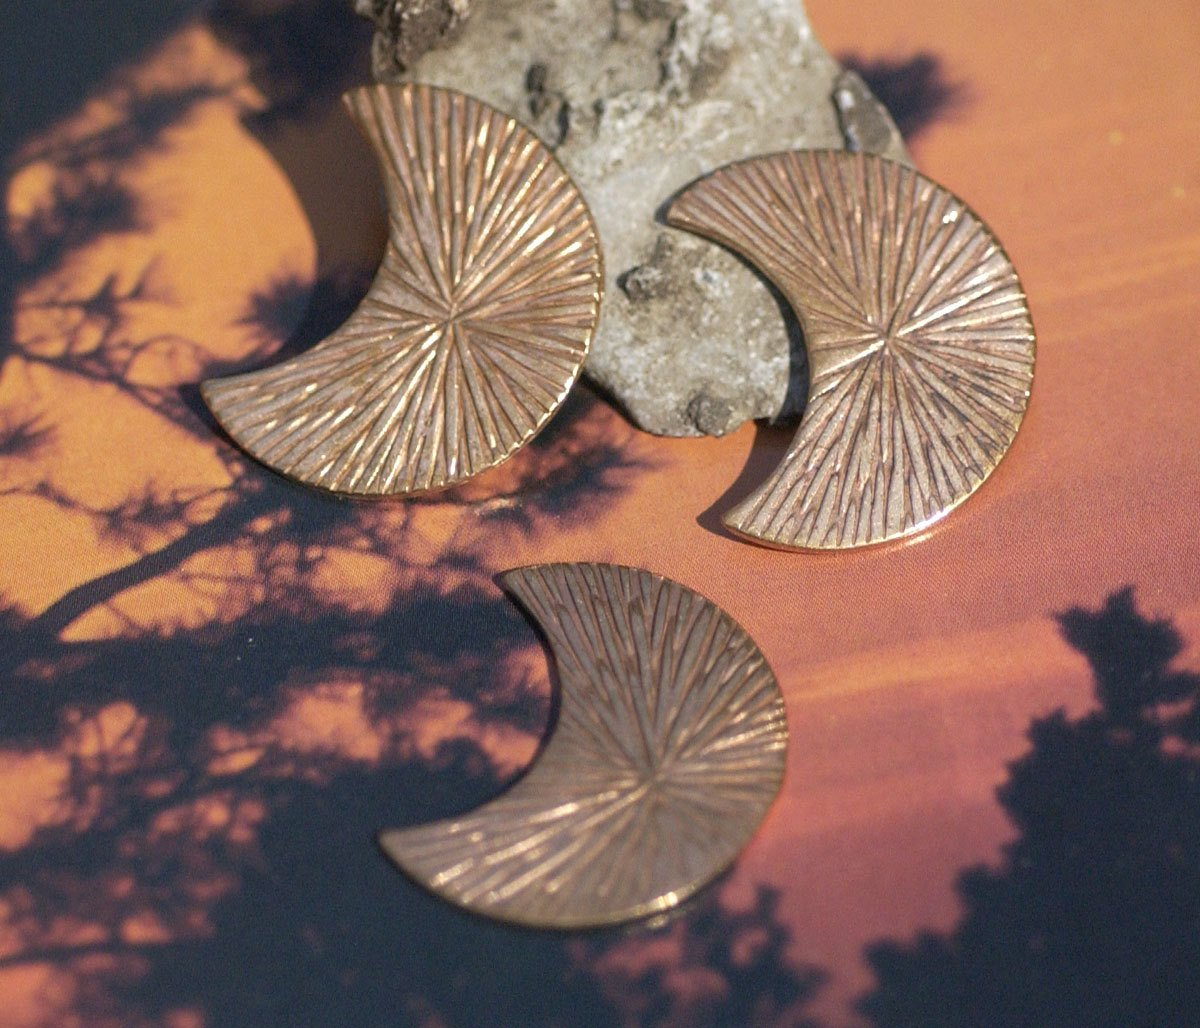 Radiating Sun 29.5mm x 23mm Moon Cheshire for Blanks Enameling Stamping Texturing Soldering Variety of Metals